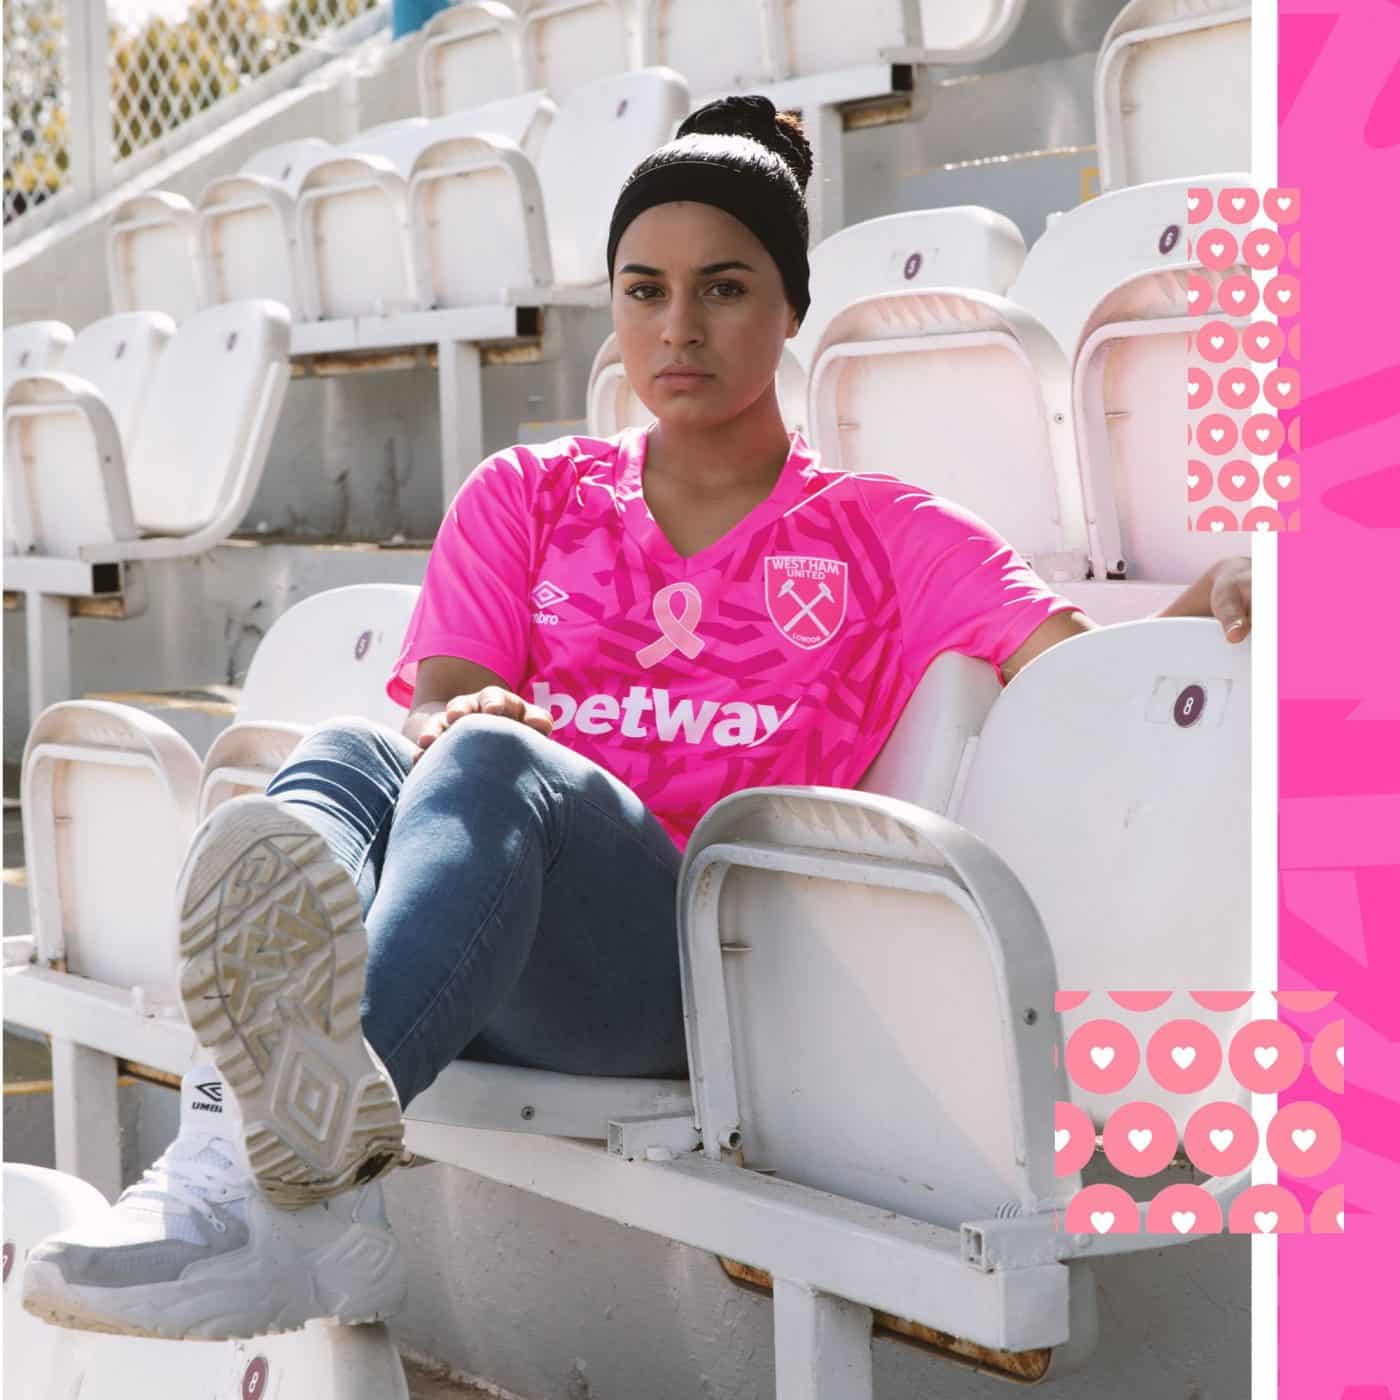 maillot-rose-swet-ham-united-cancer-du-sein-octobre-rose-3